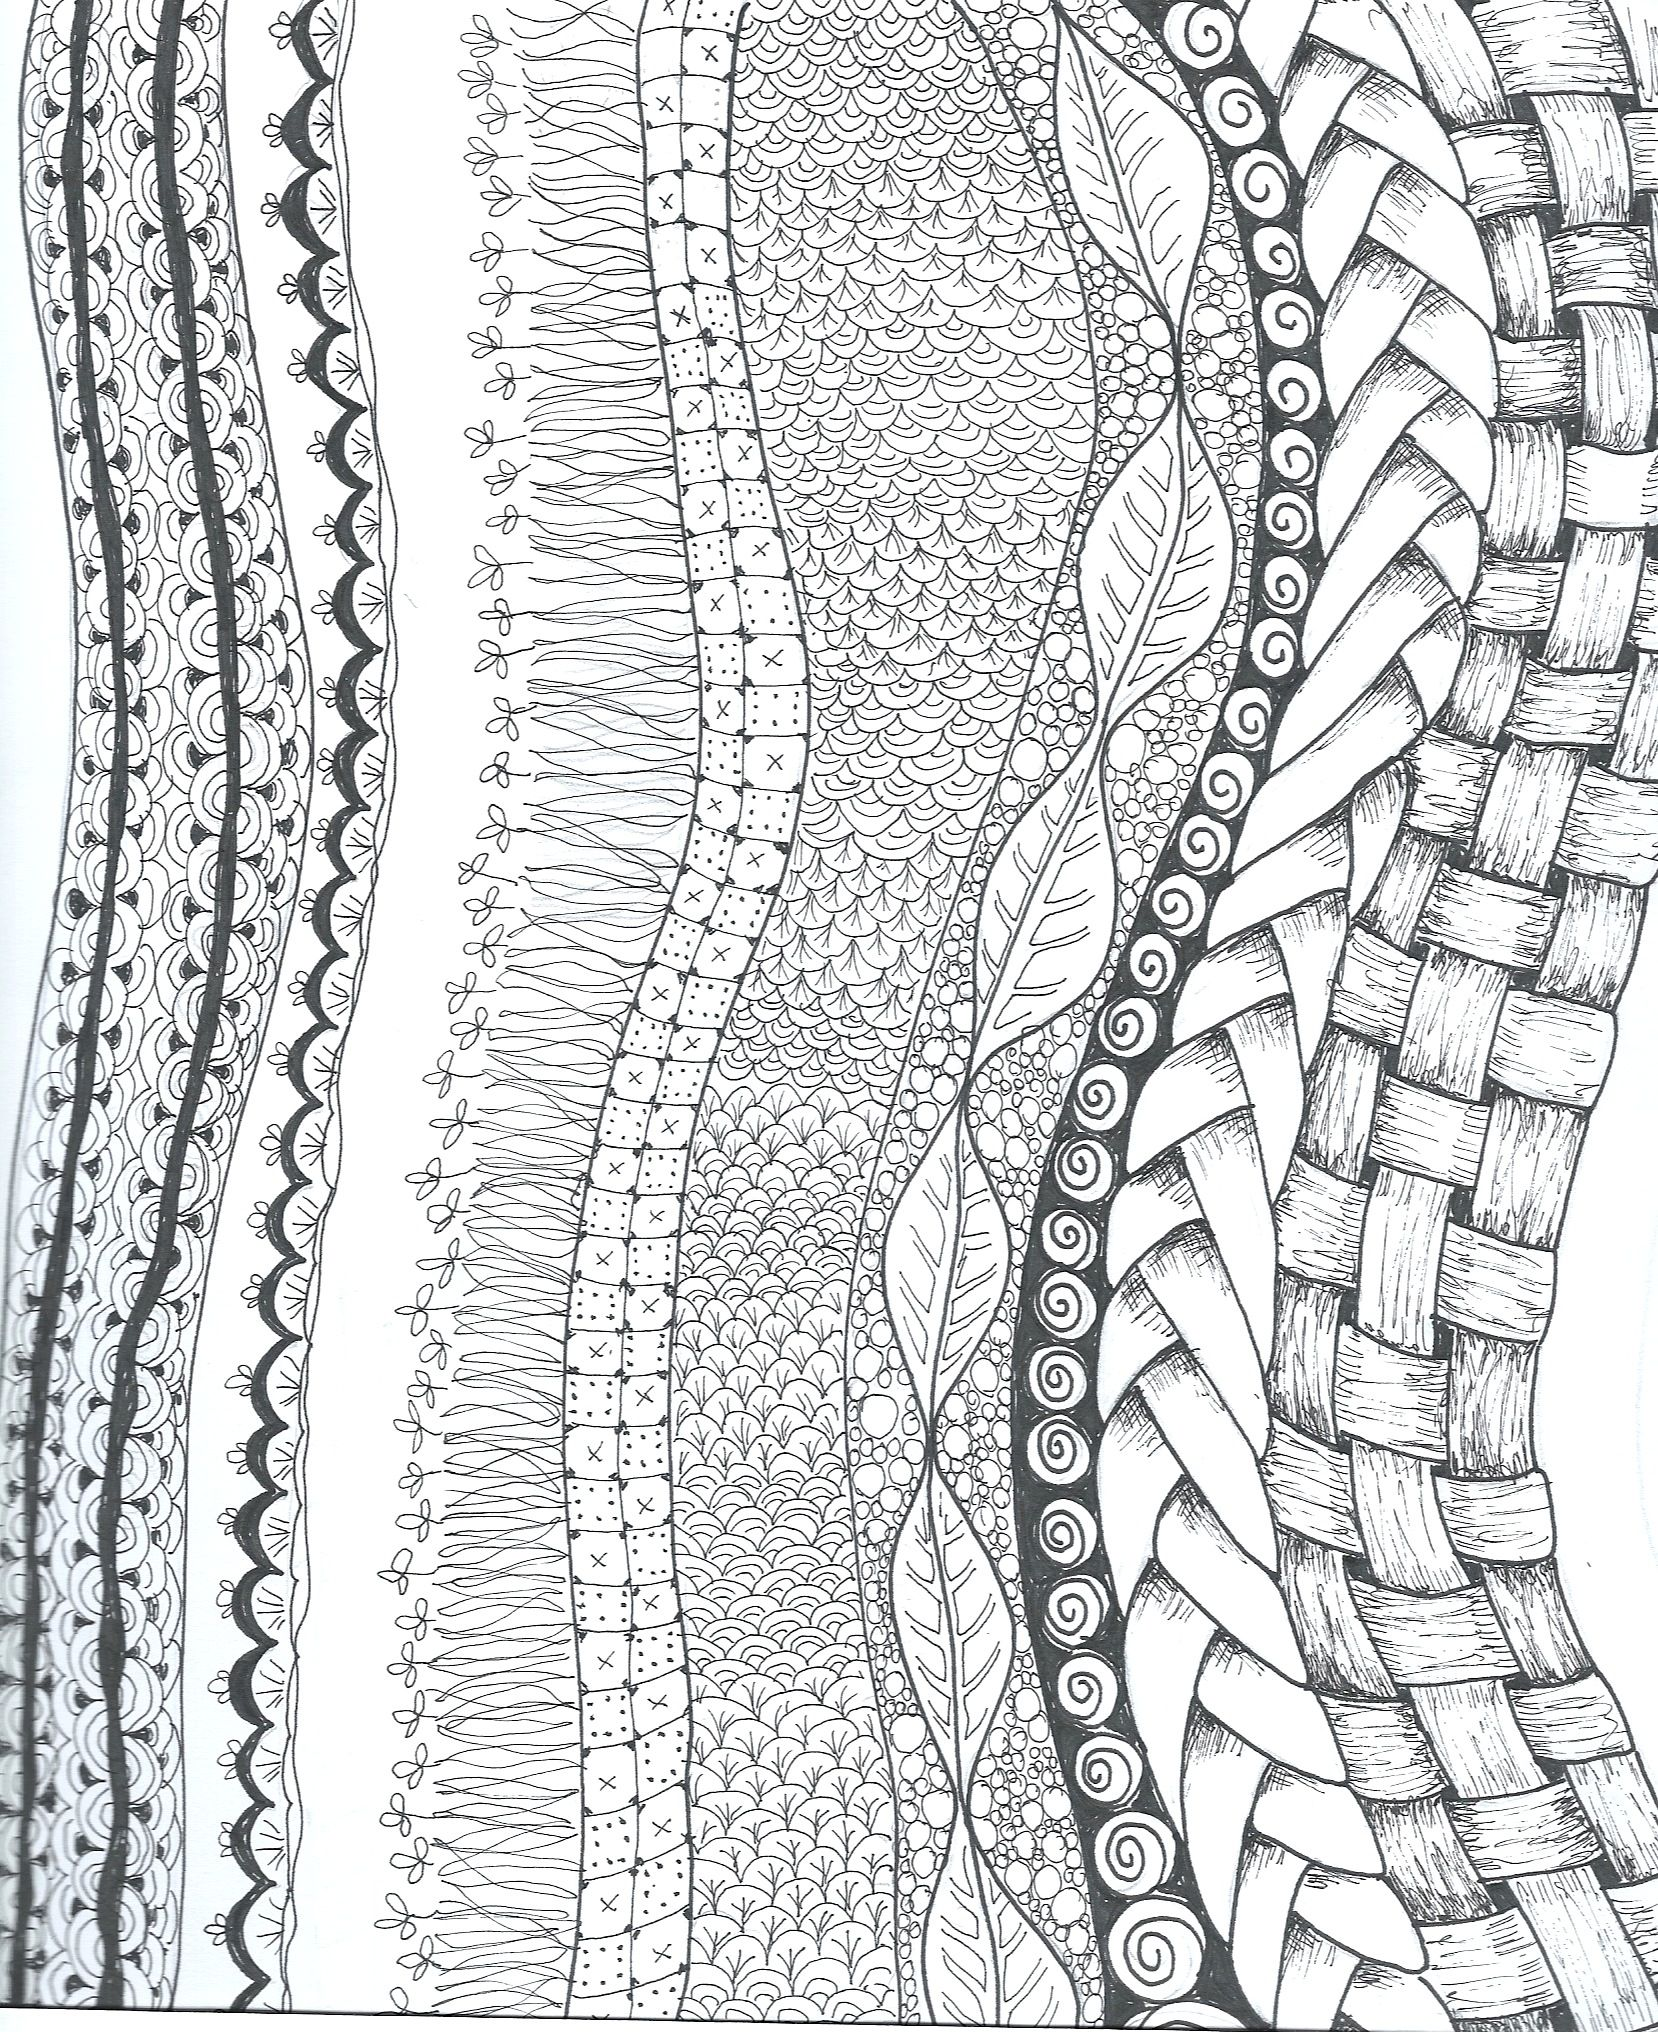 Vertical designs Black and white | My Art Work | Pinterest | Zentangles